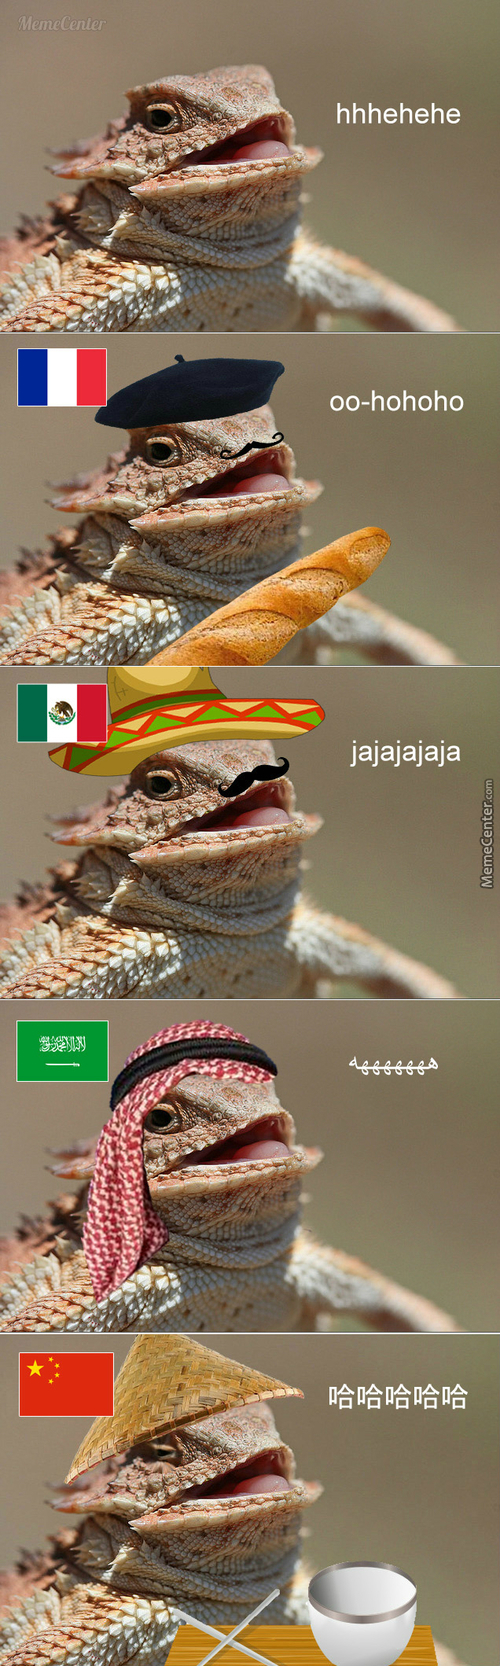 Laughing Lizard In Different Countries